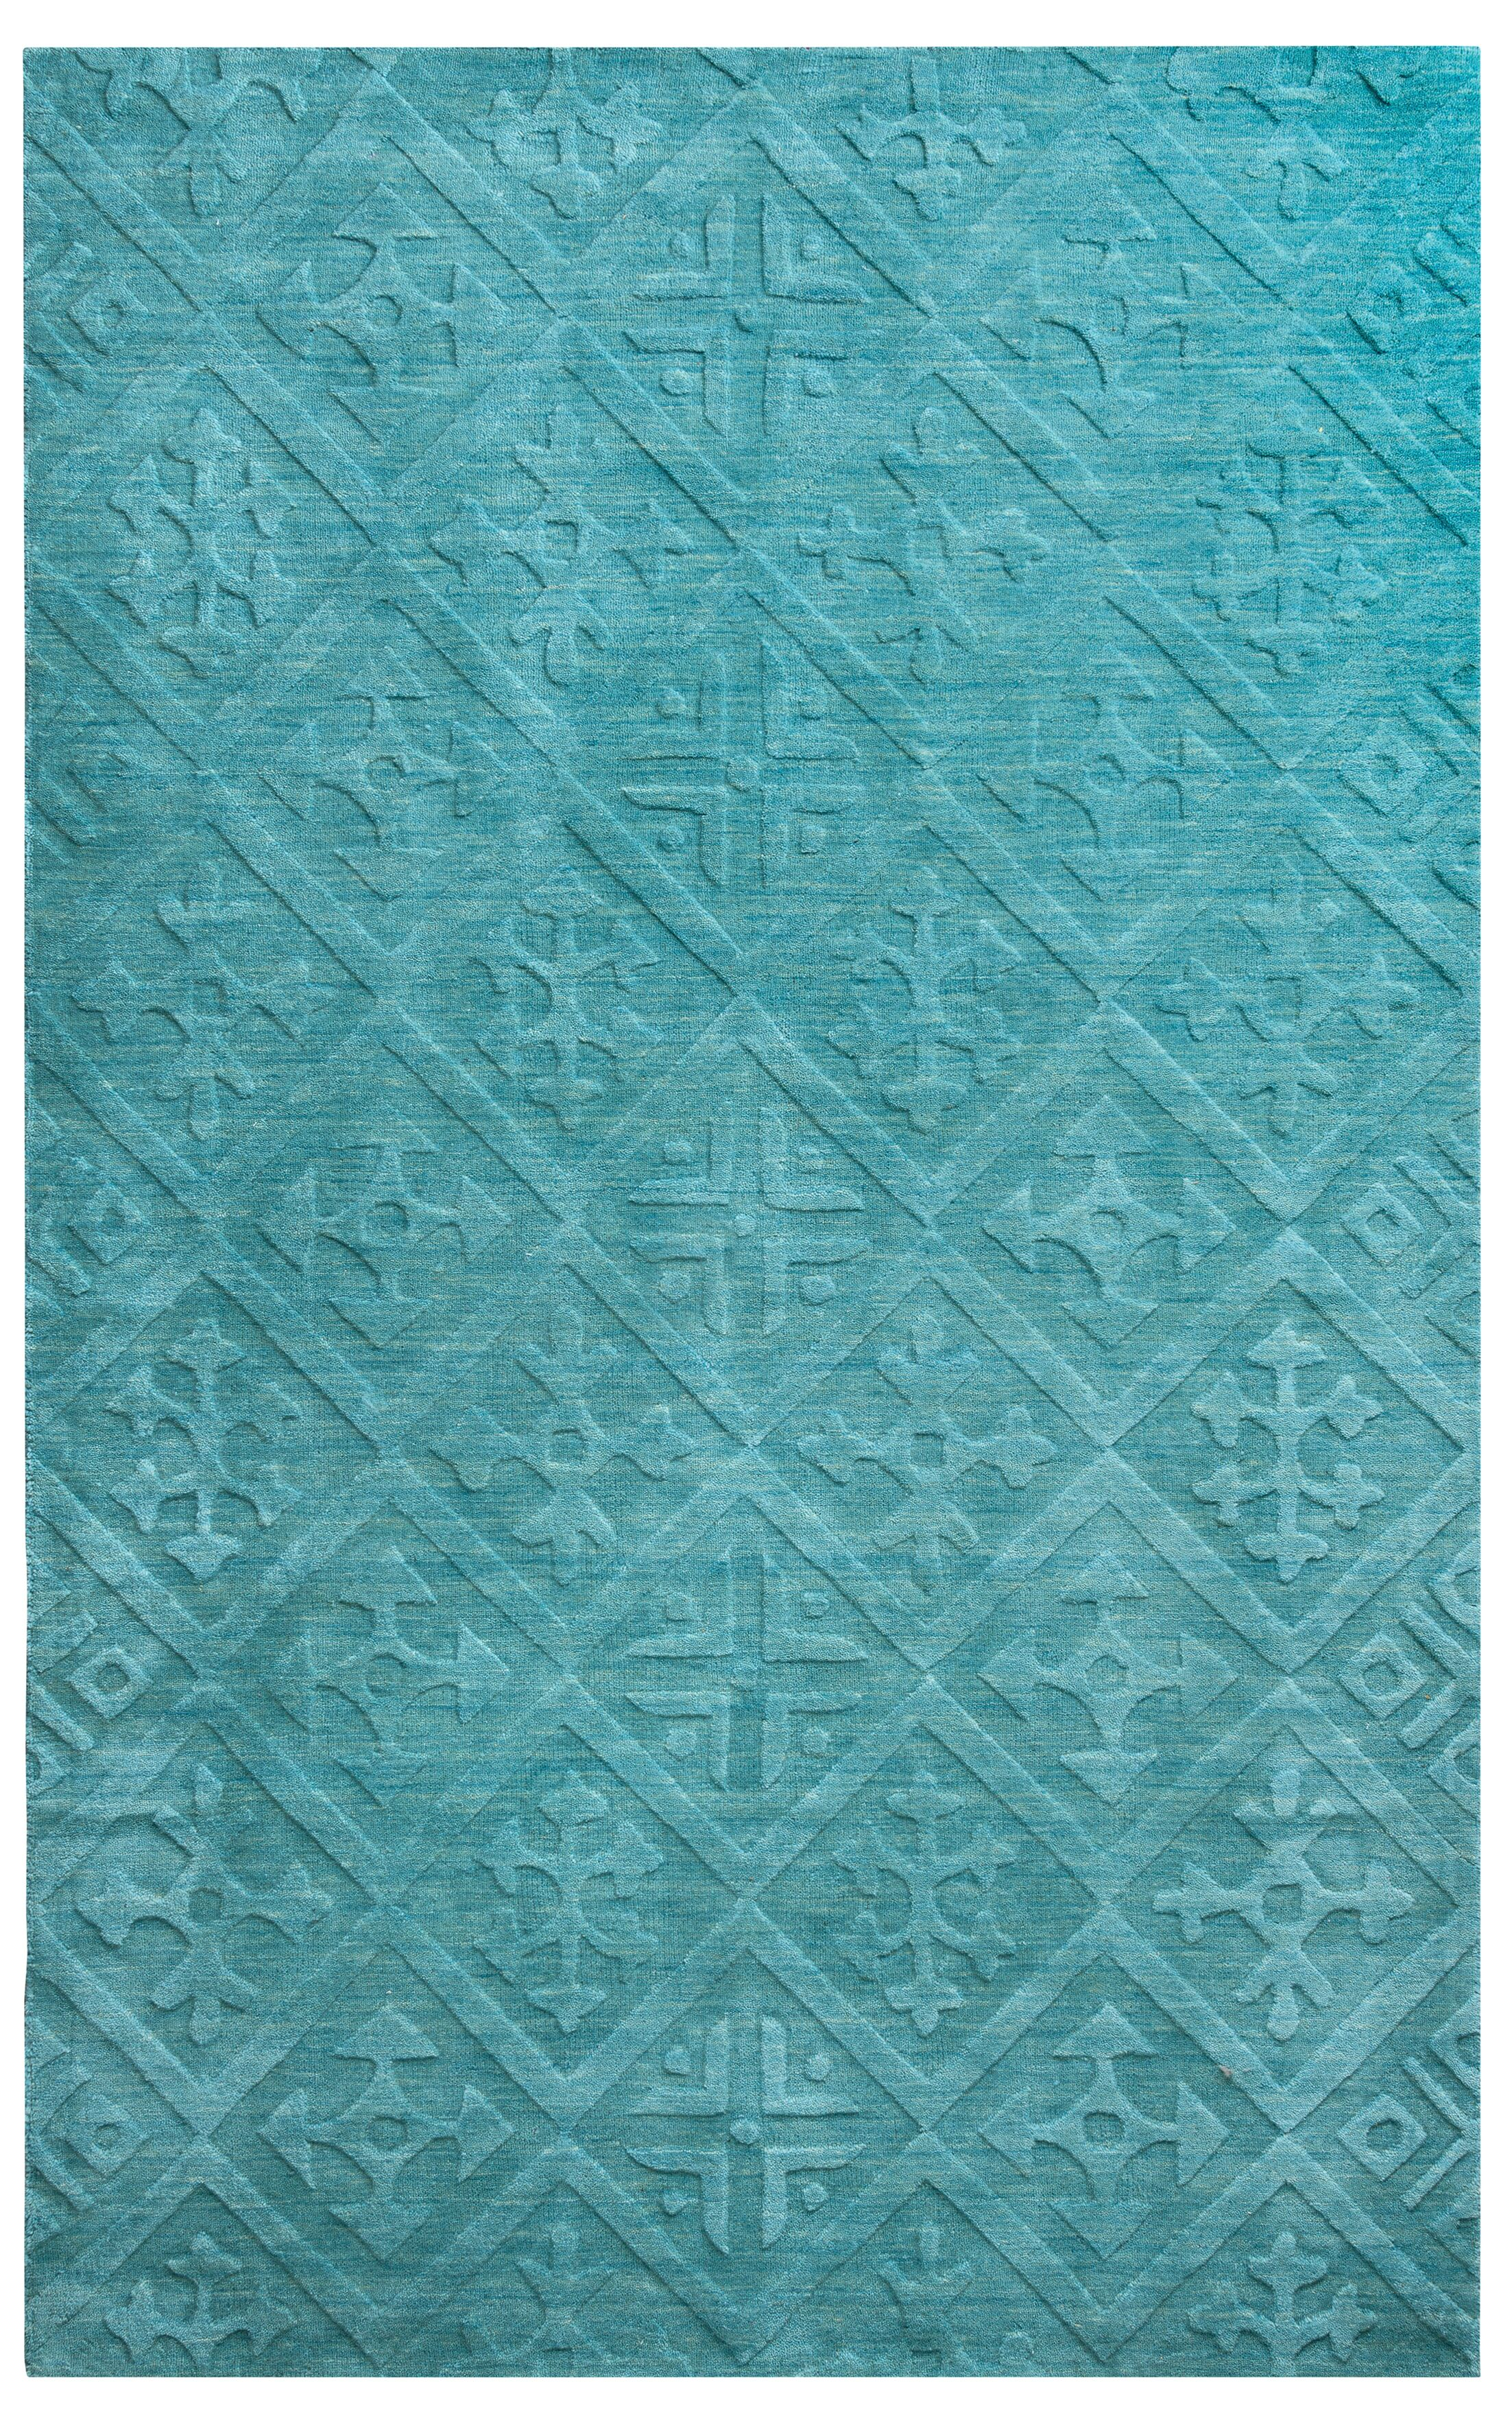 Split Hand-Loomed Teal Area Rug Rug Size: Rectangle 9' x 12'